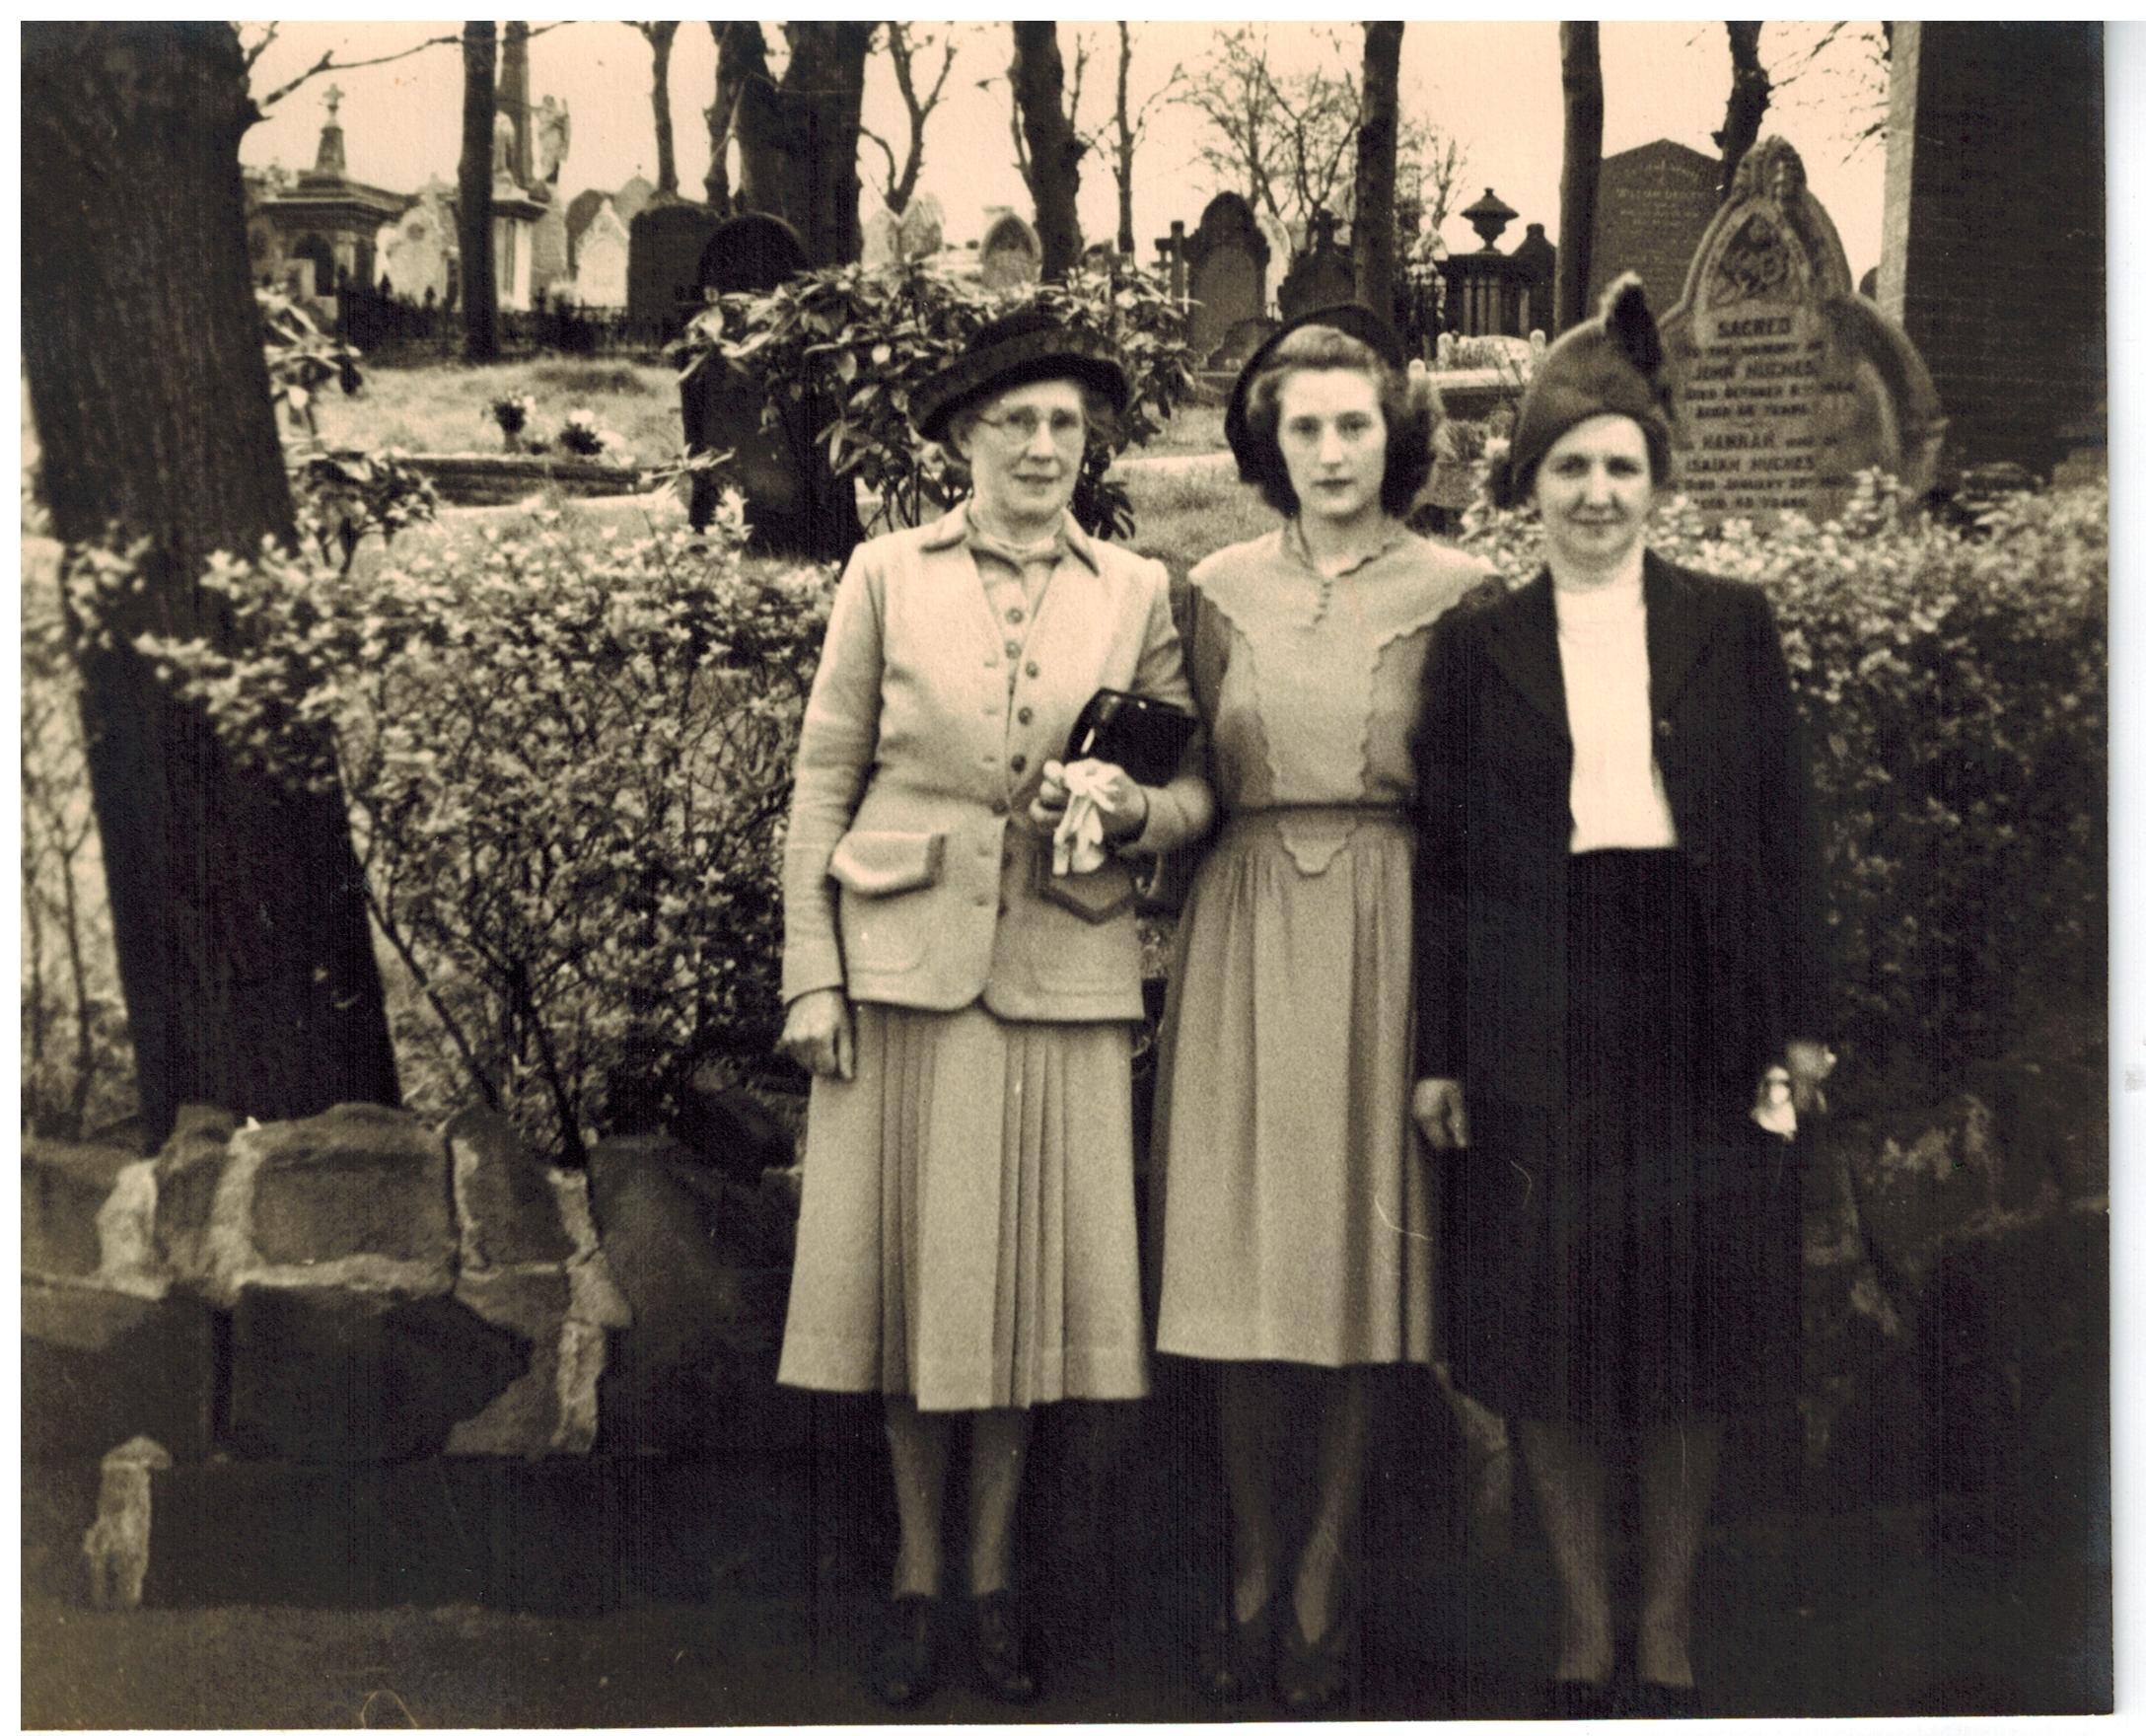 A053_L-R_Mrs-Lee_Mary-Lea_May-Willetts